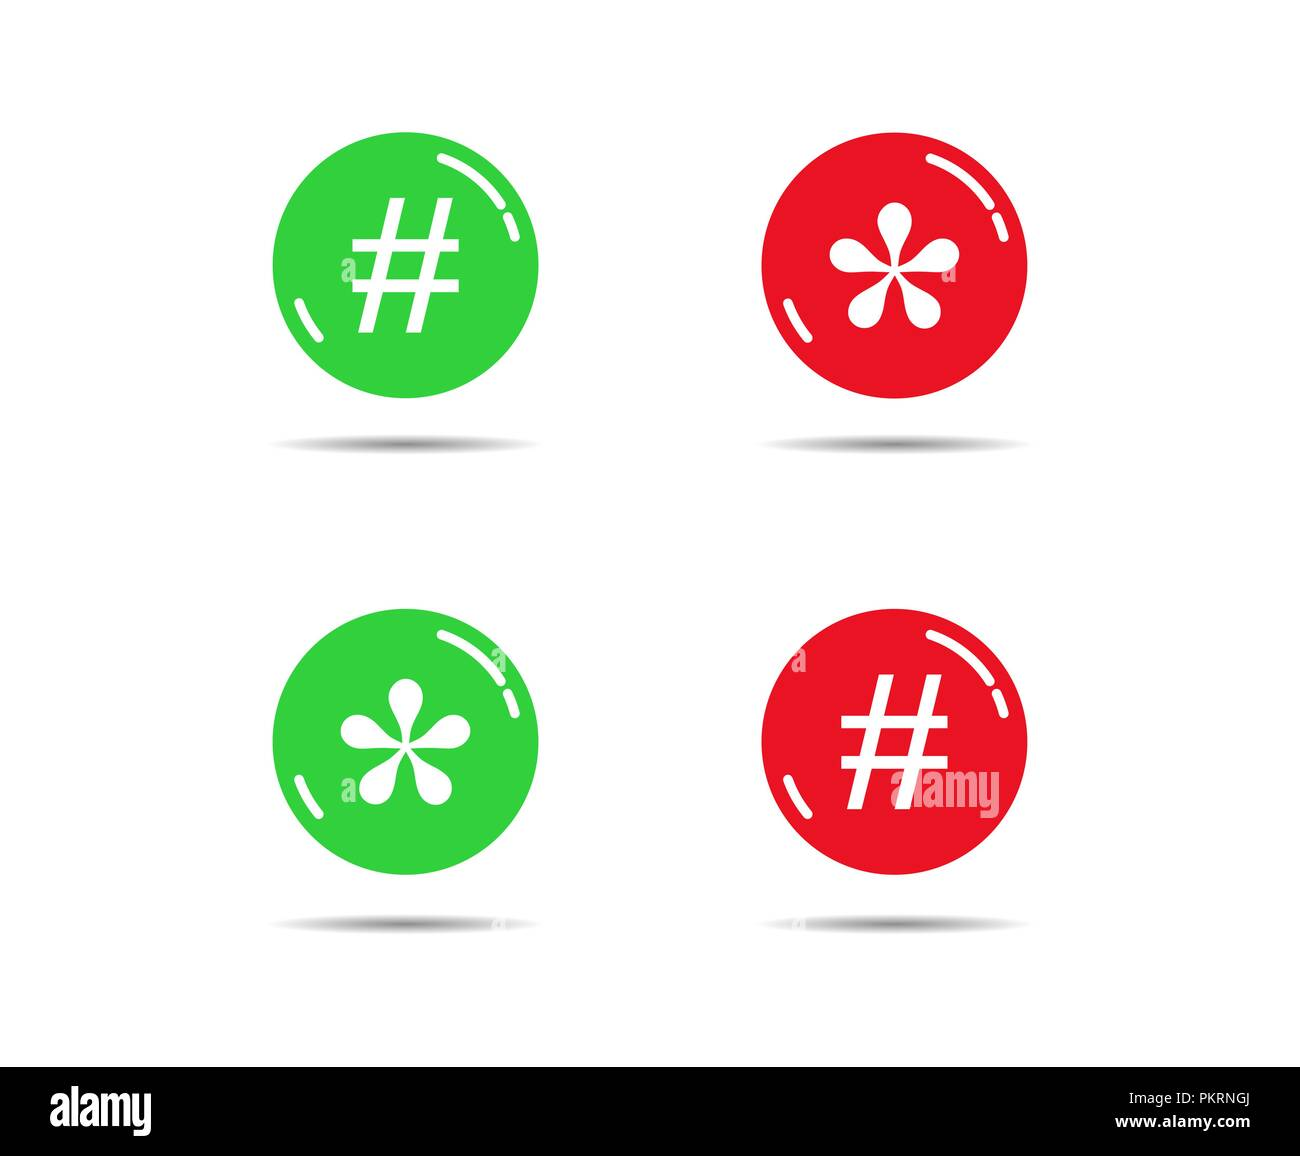 Green and red buttons with asterisks and bars - Stock Image